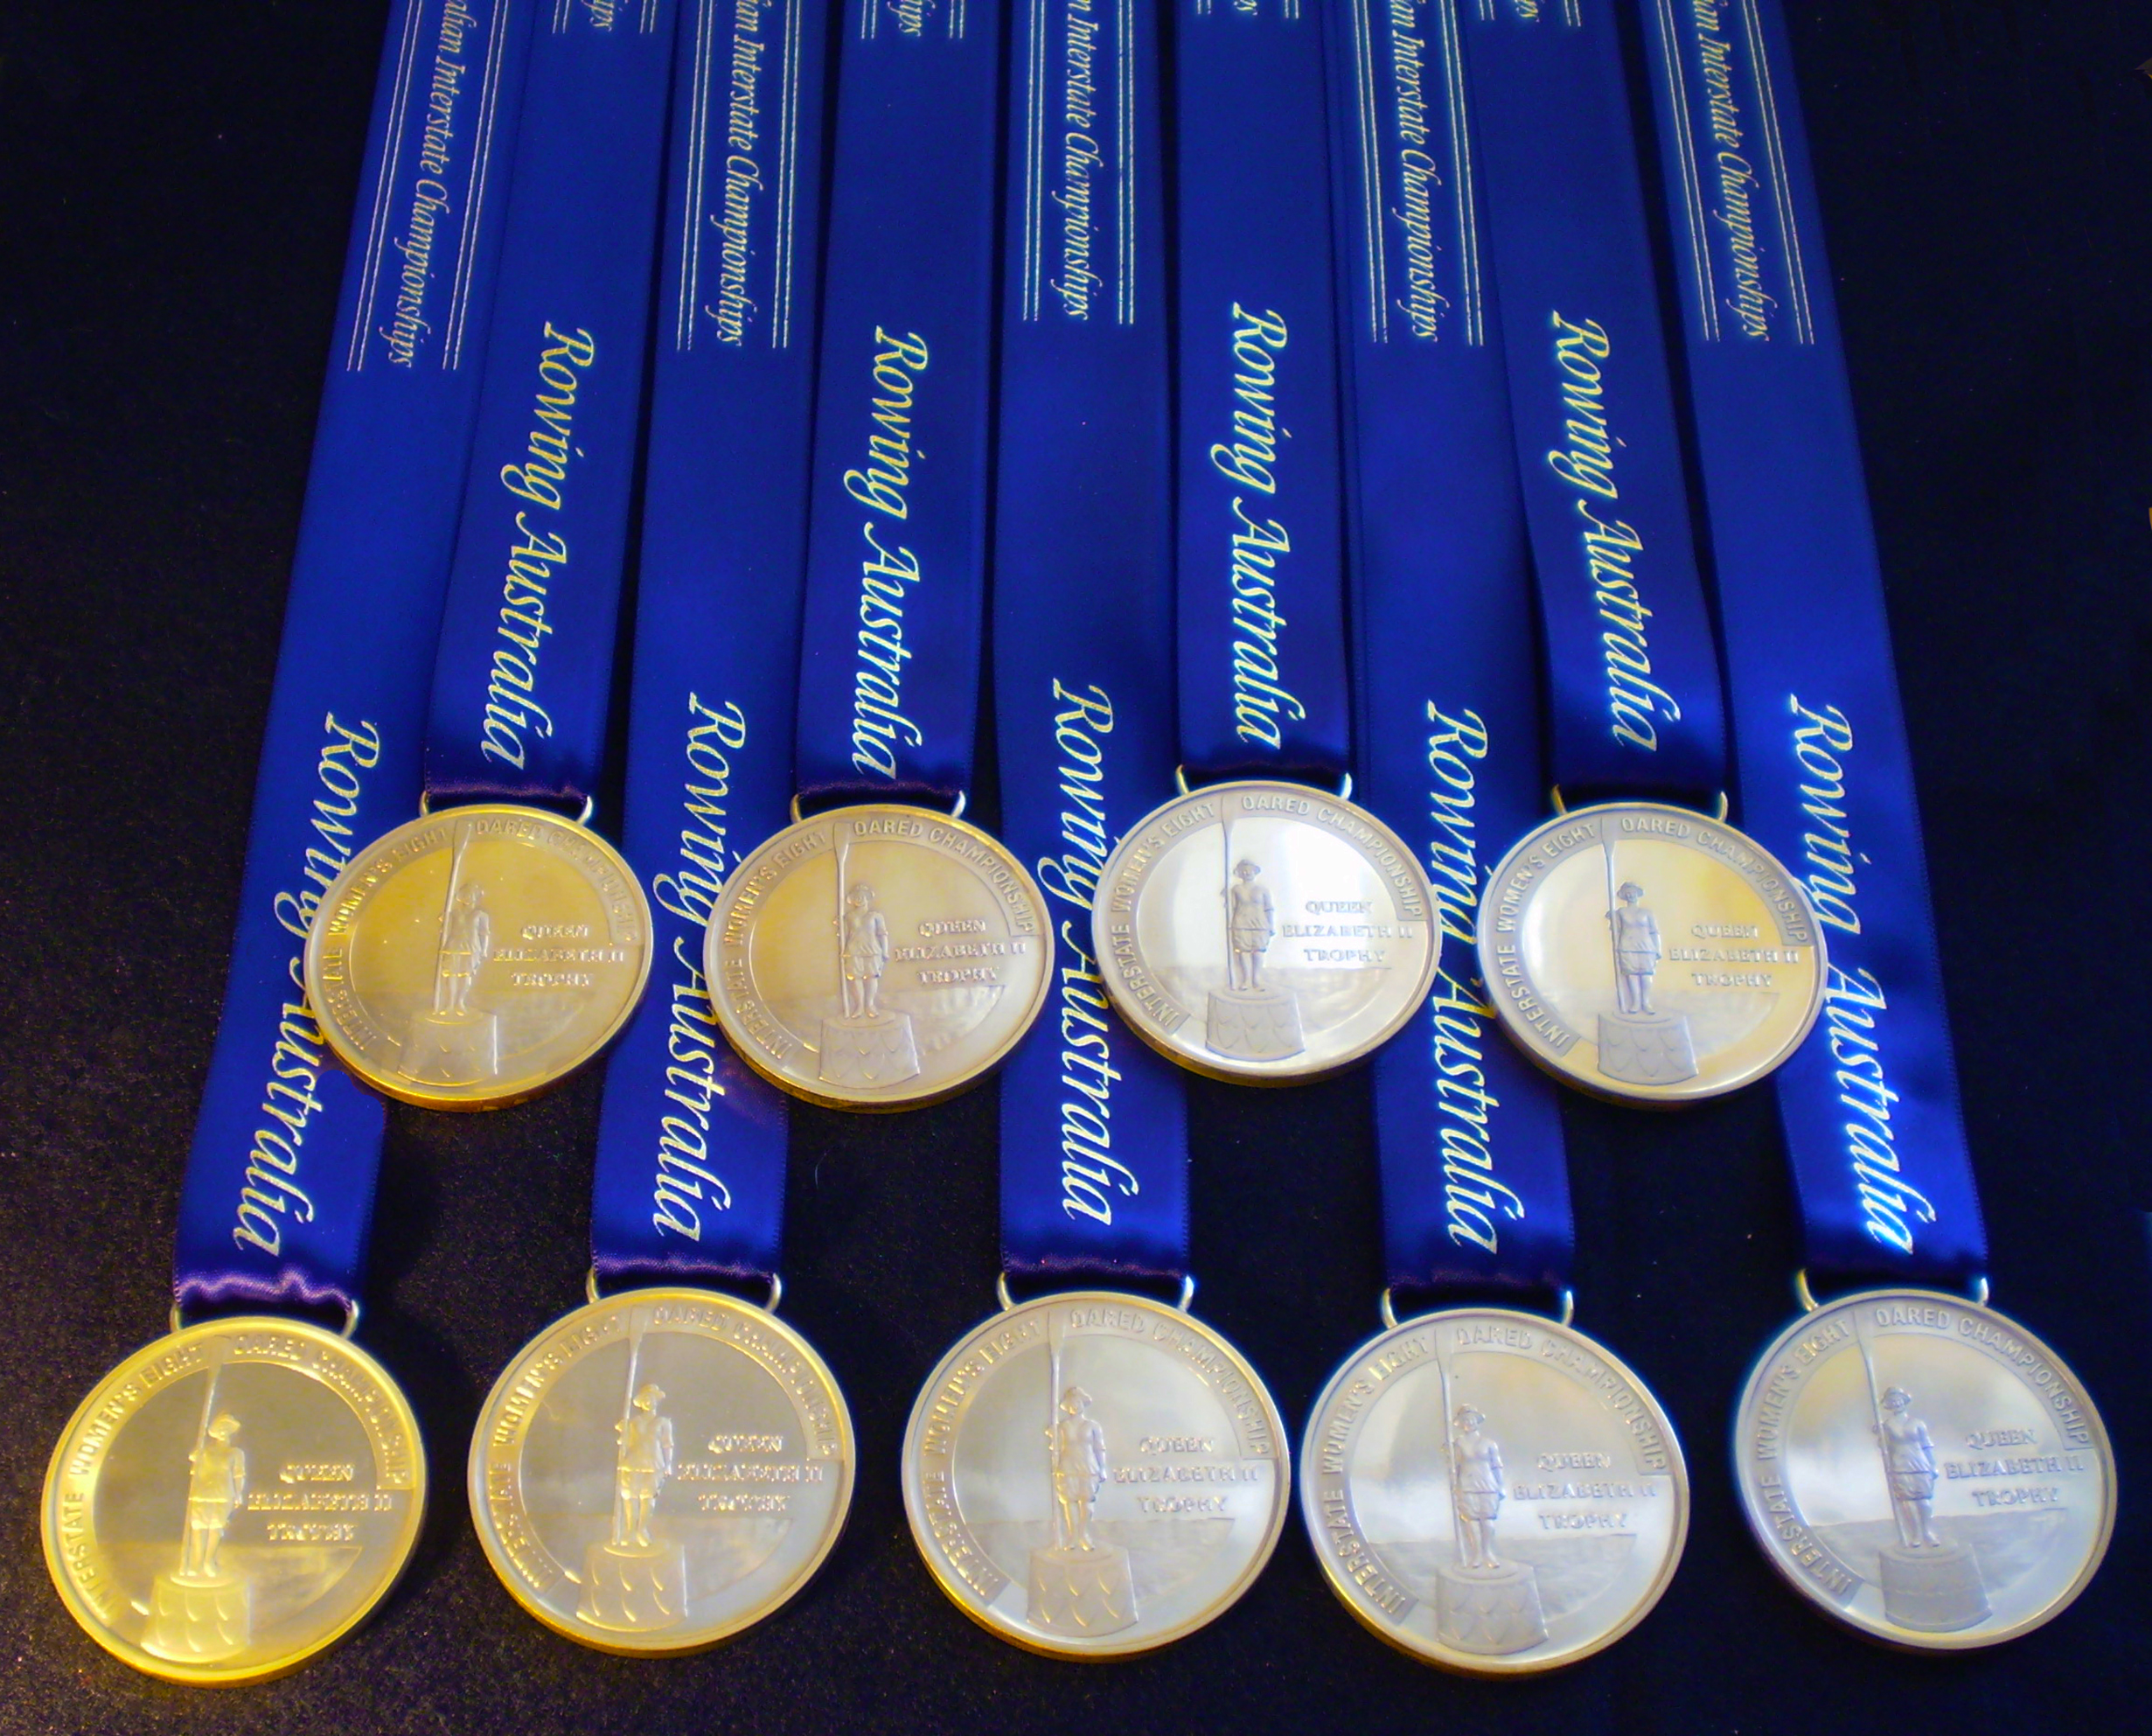 Rowing Australia medals